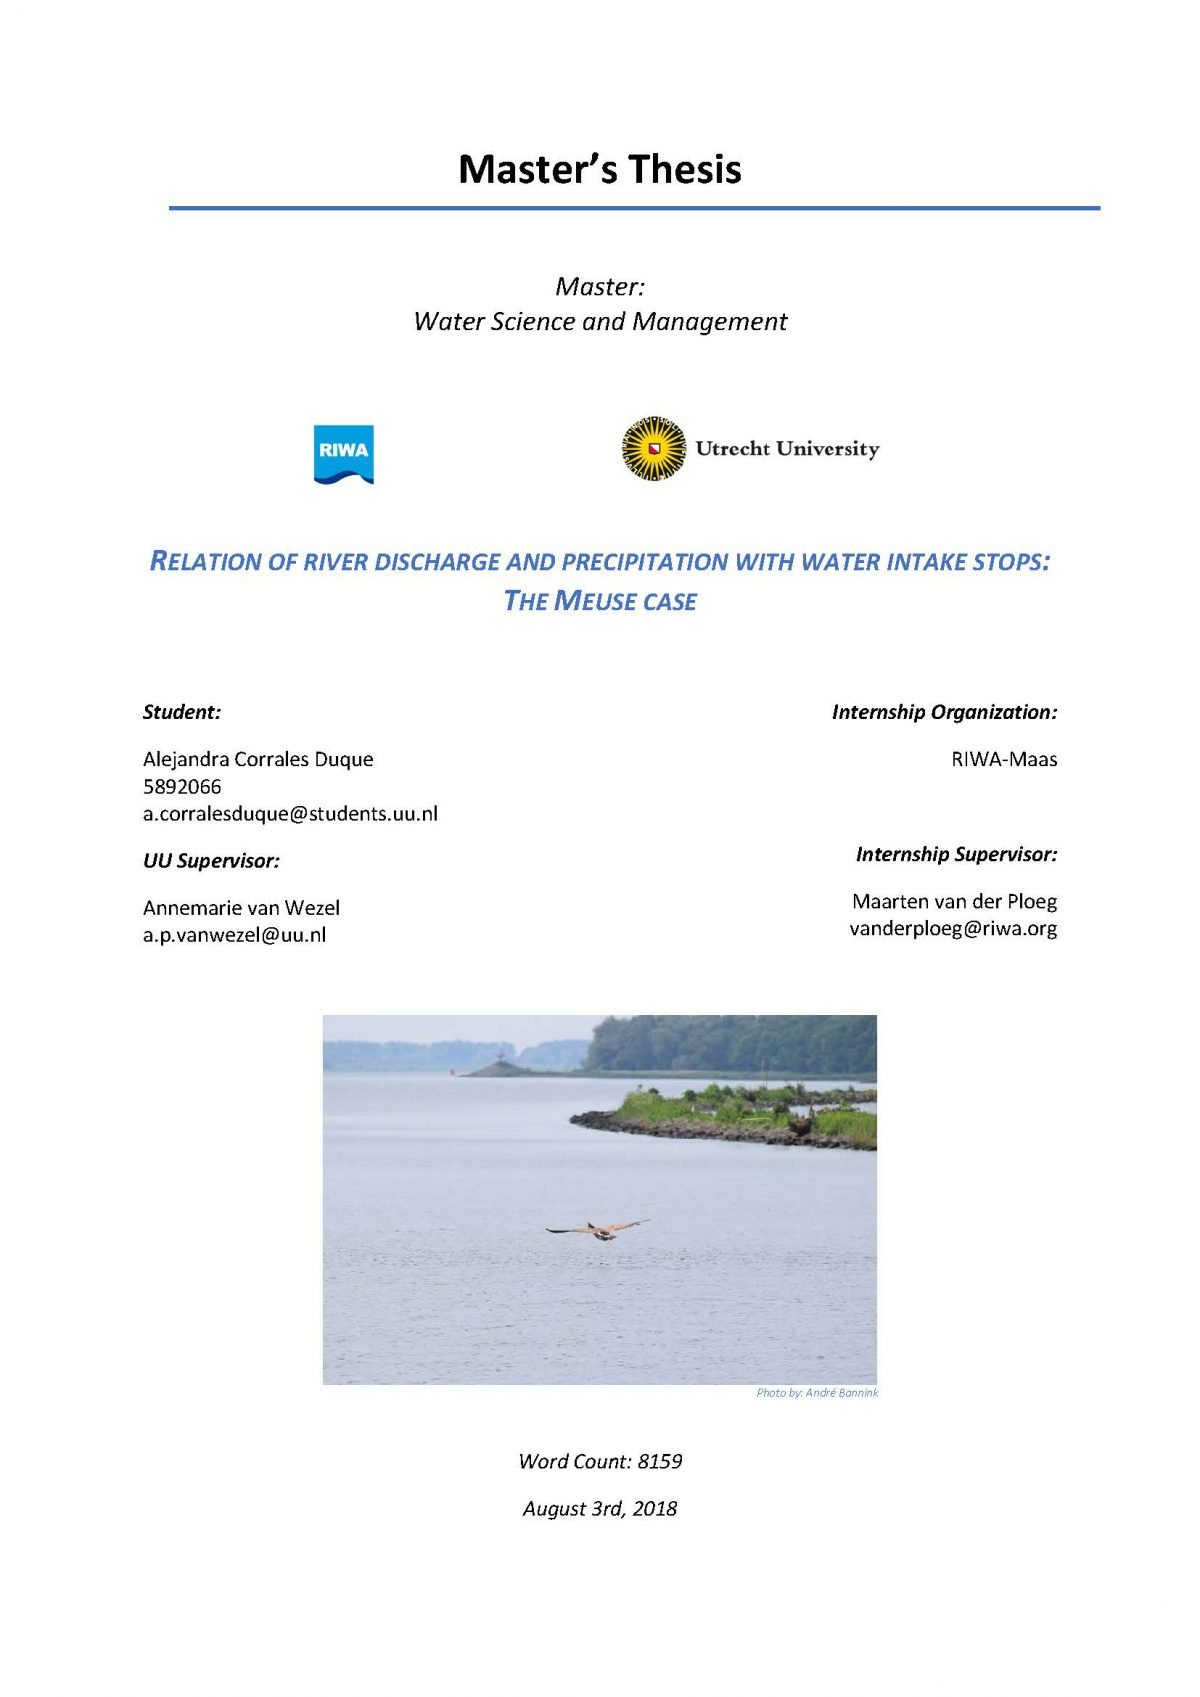 Relation of river discharge and precipitation with water intake stops: the Meuse case